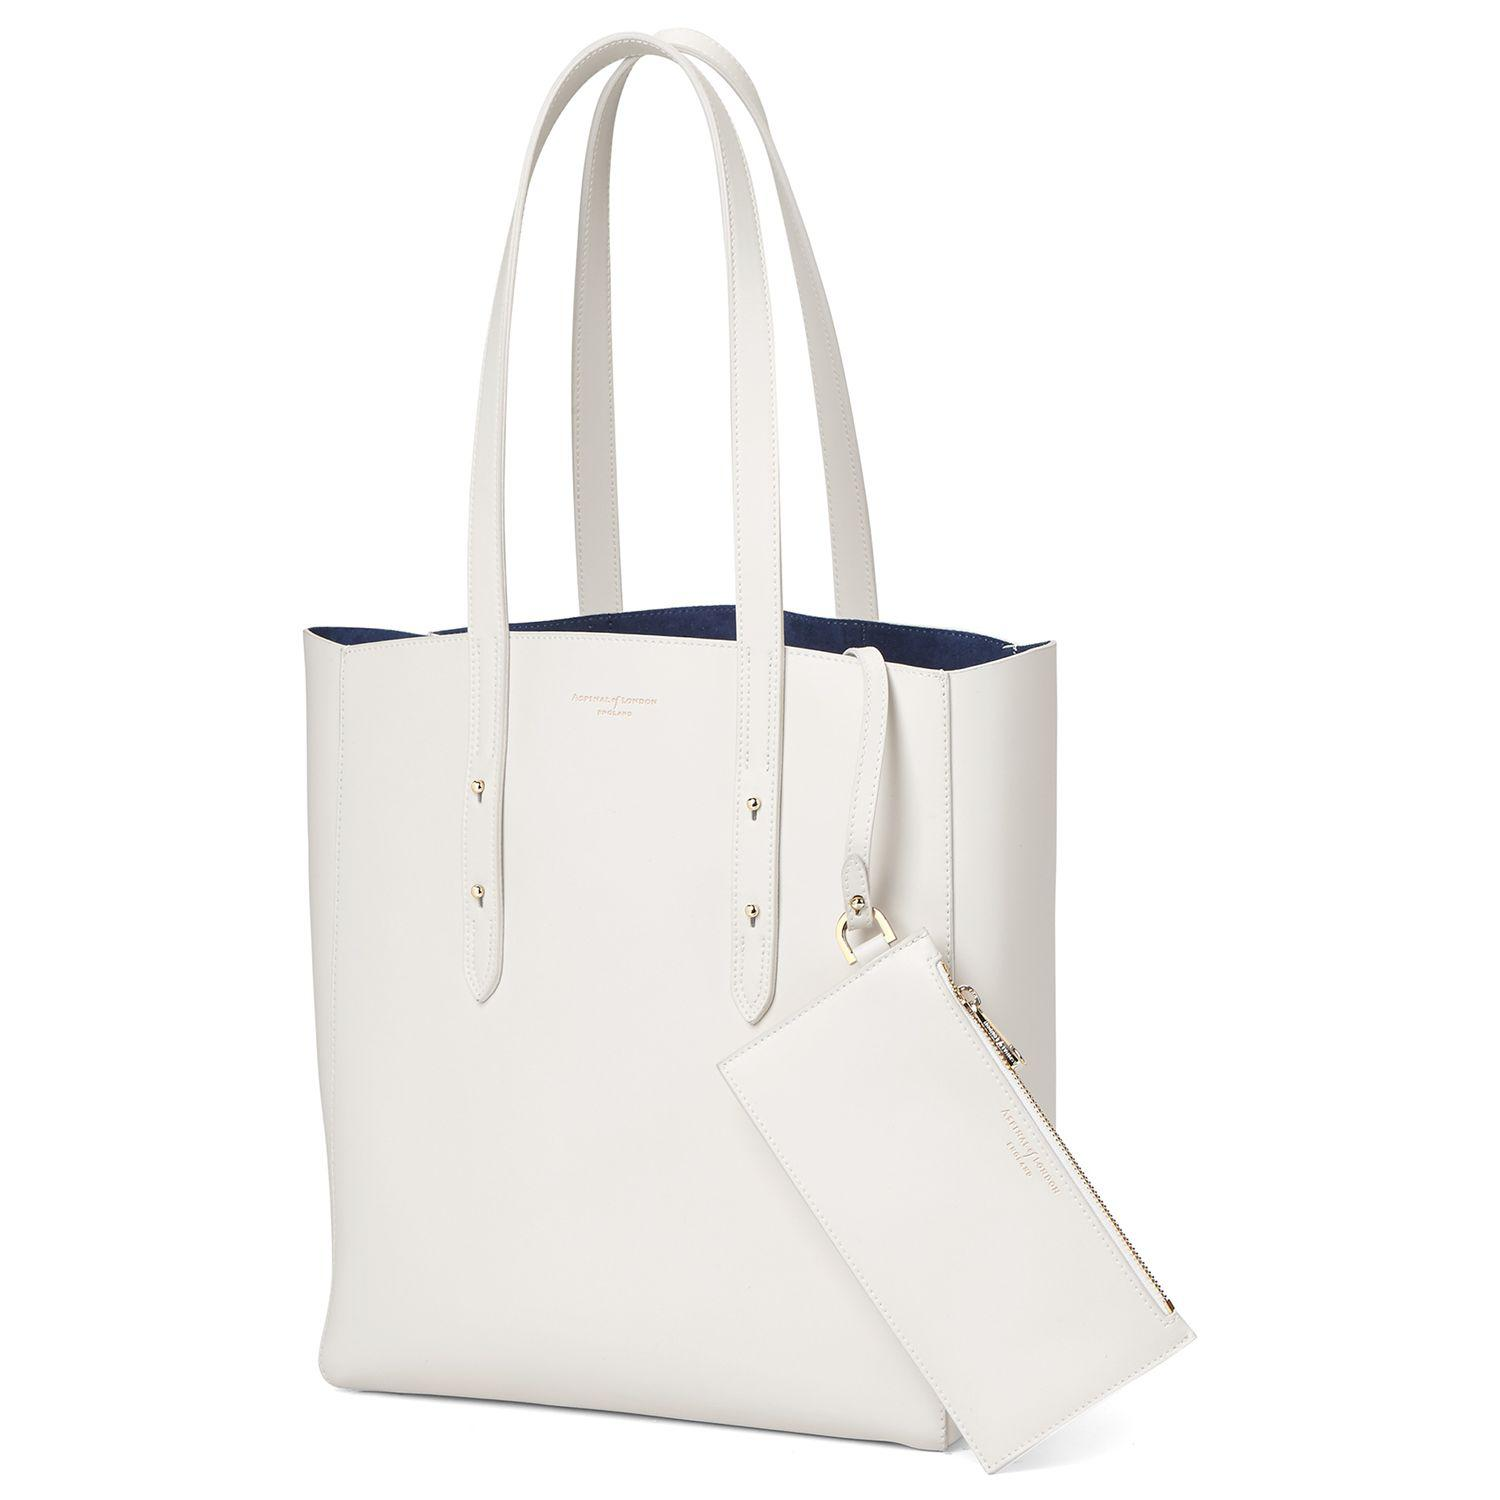 Aspinal of London Leather Essential Tote Bag in Ivory (White)